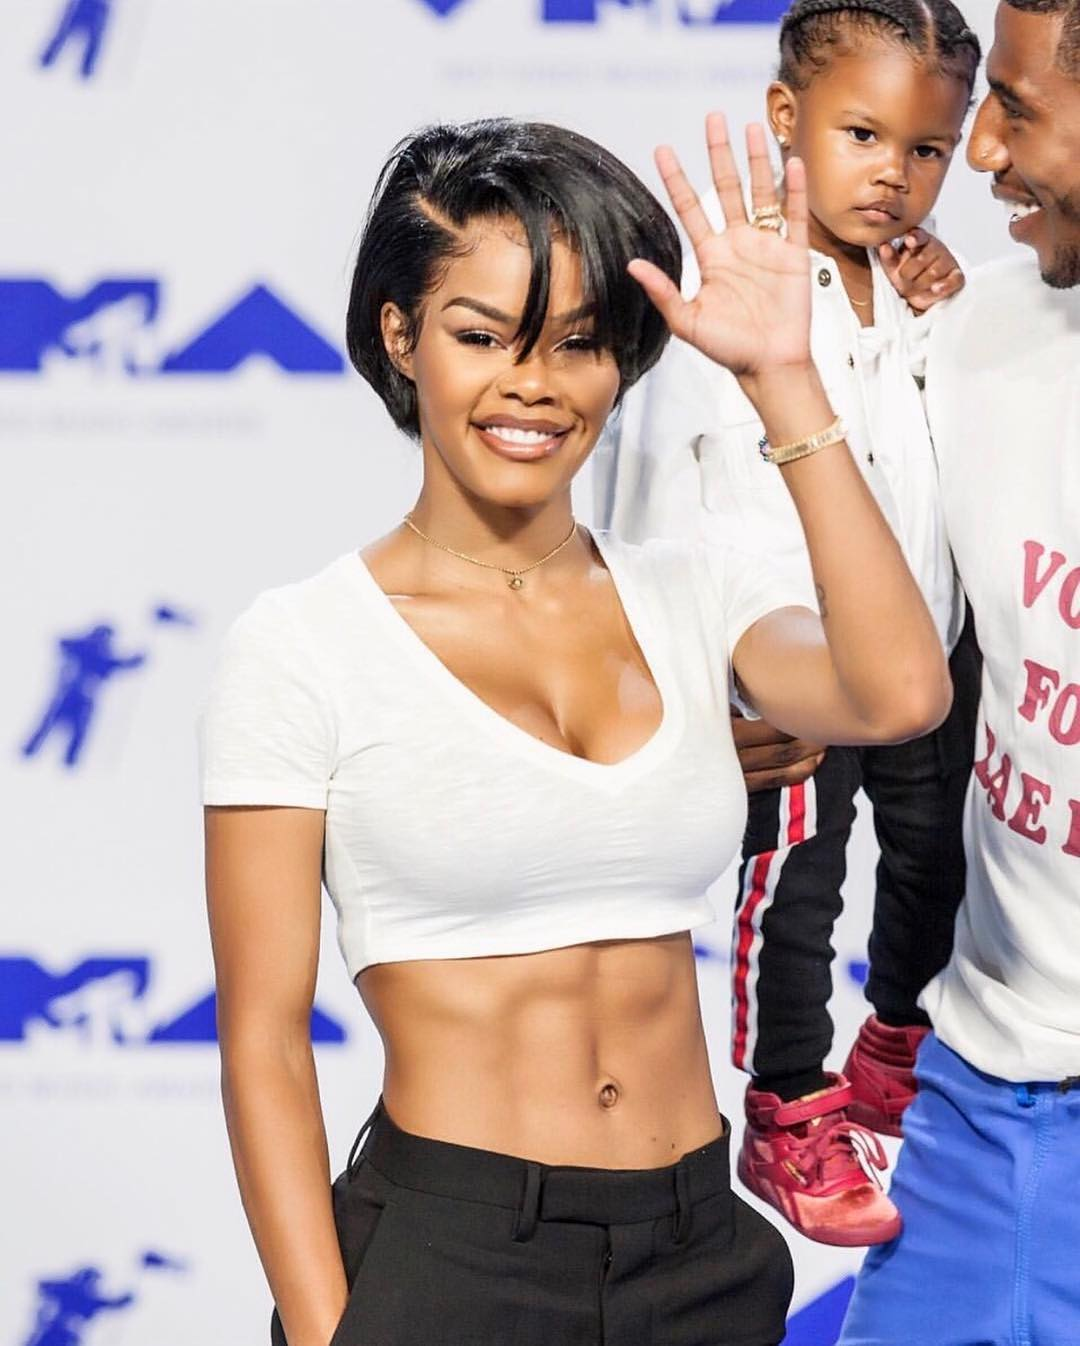 .@TEYANATAYLOR, @wizkhalifa to star in new Netflix comedy movie. https://t.co/HtpHD0yQZw https://t.co/qbcD1UABrF